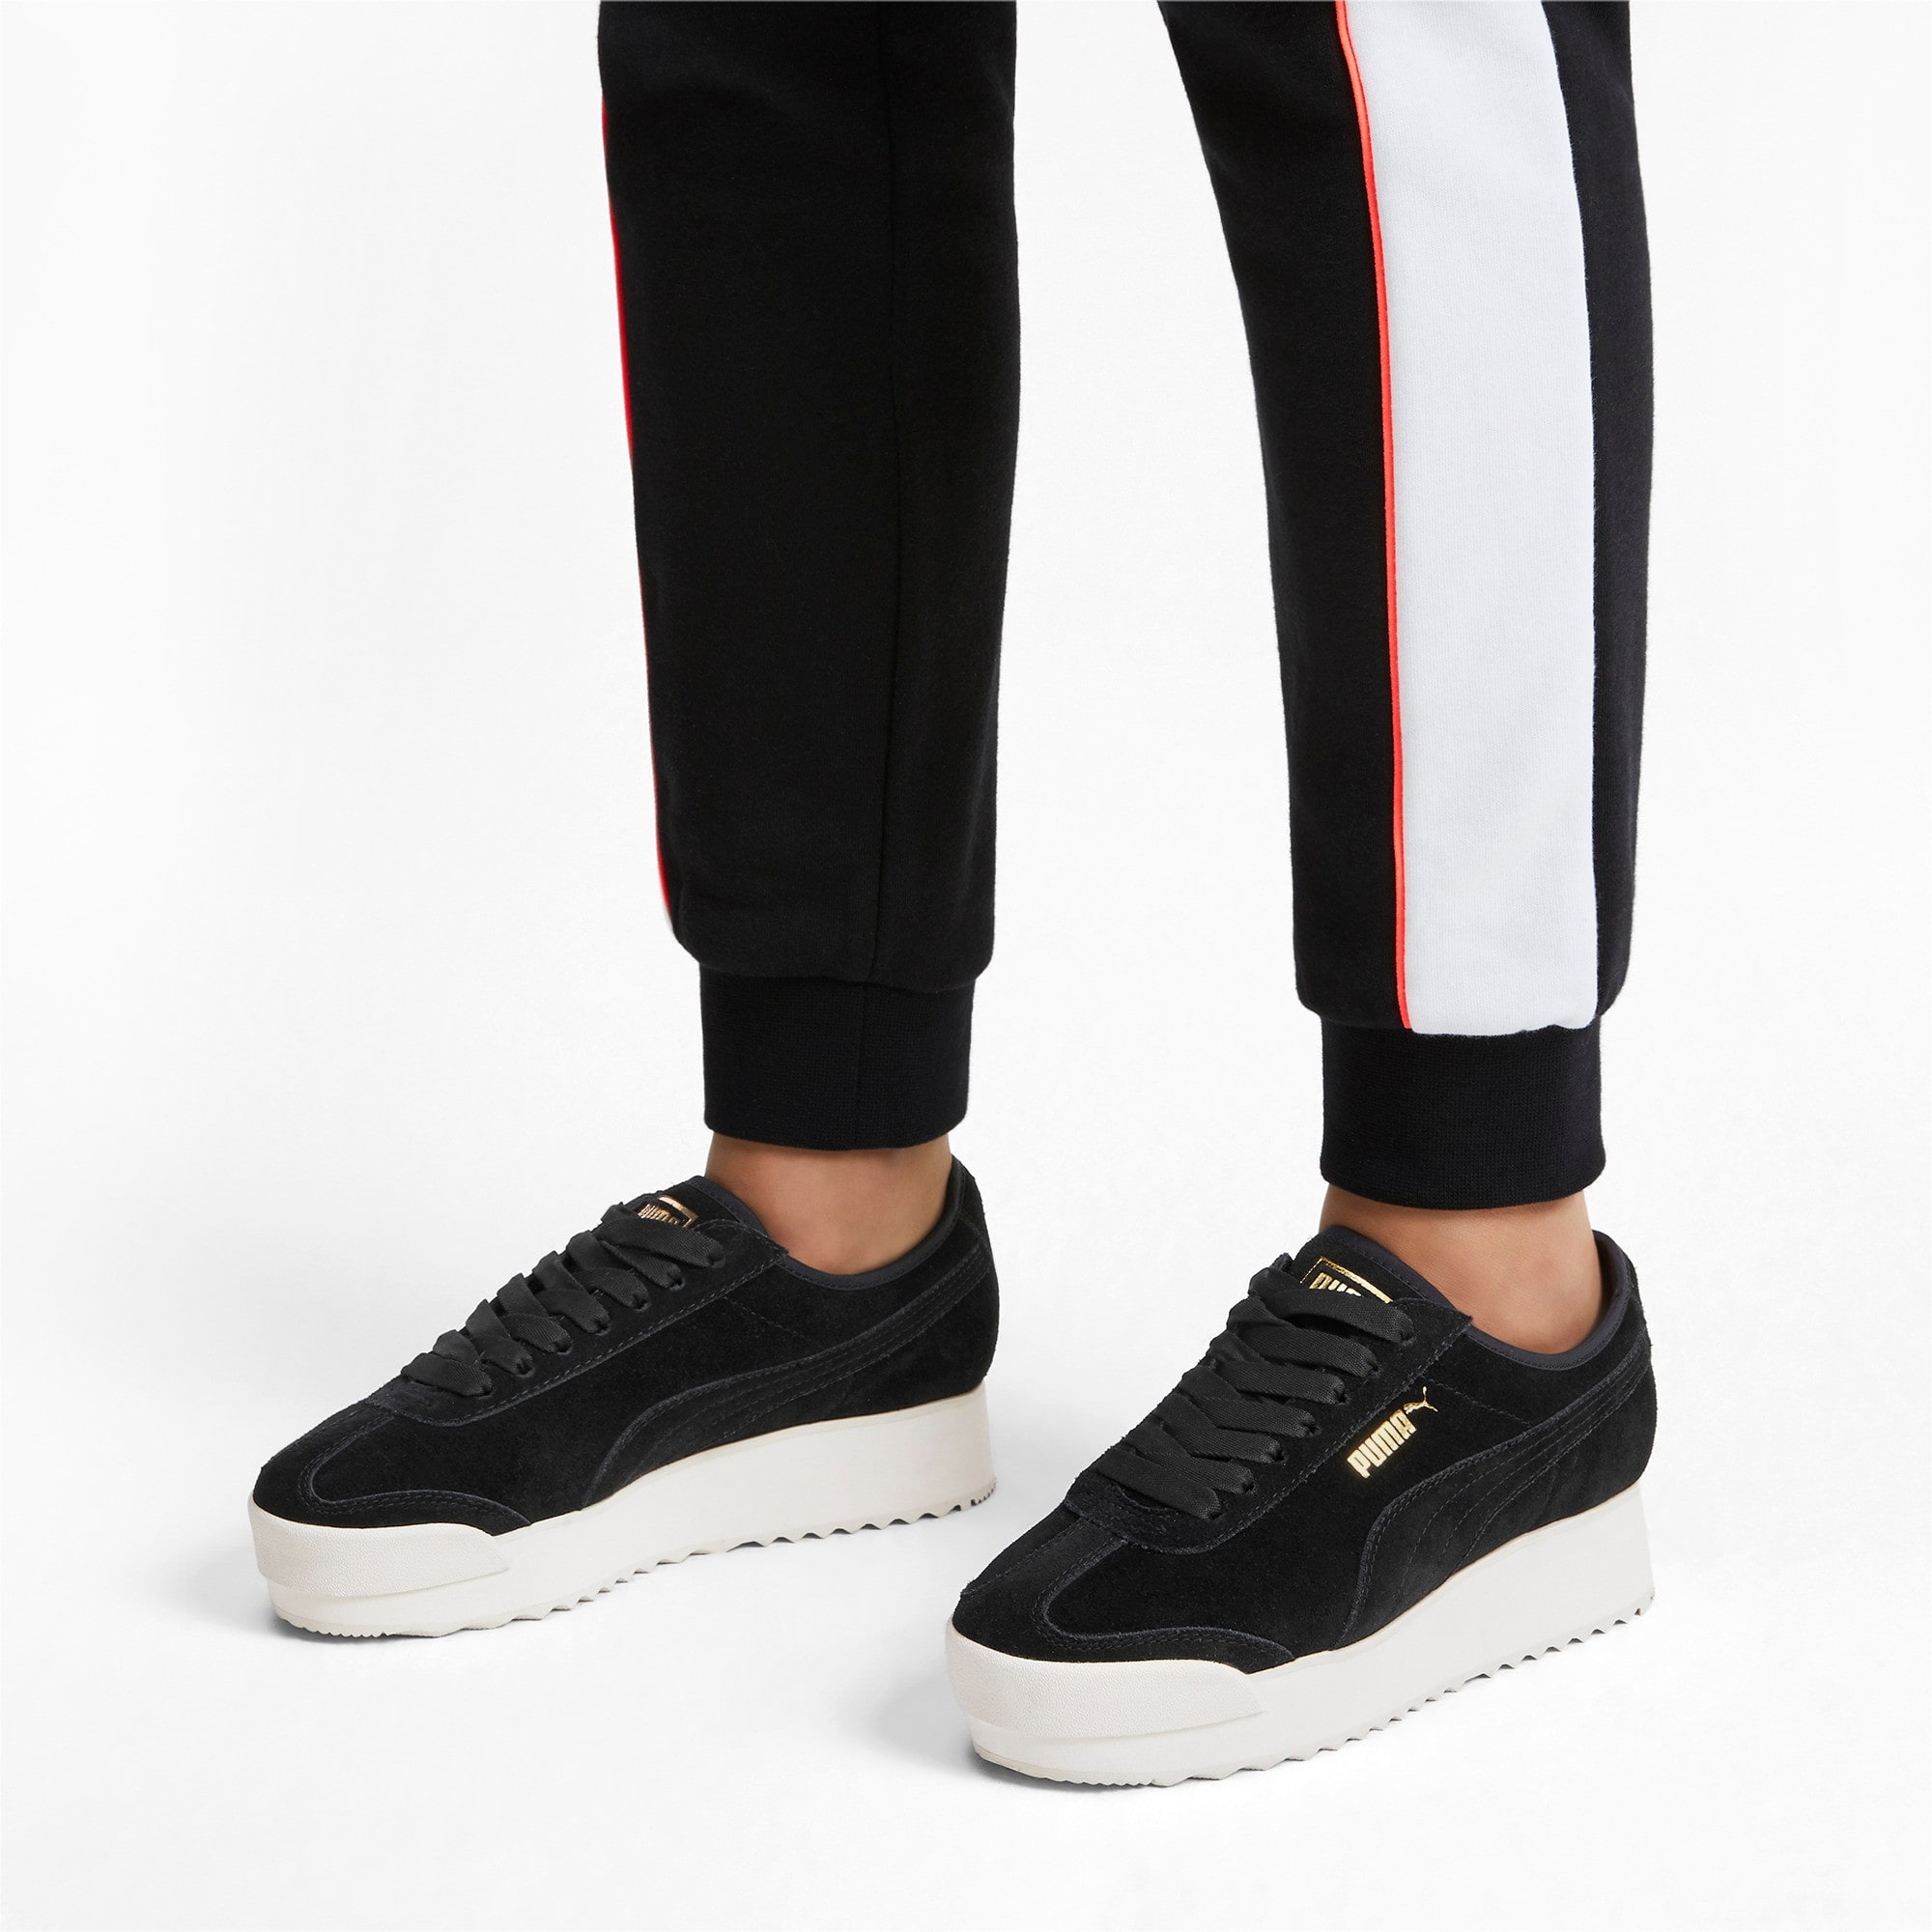 Thumbnail 2 of Roma Amor Suede Women's Trainers, Puma Black-Puma Team Gold, medium